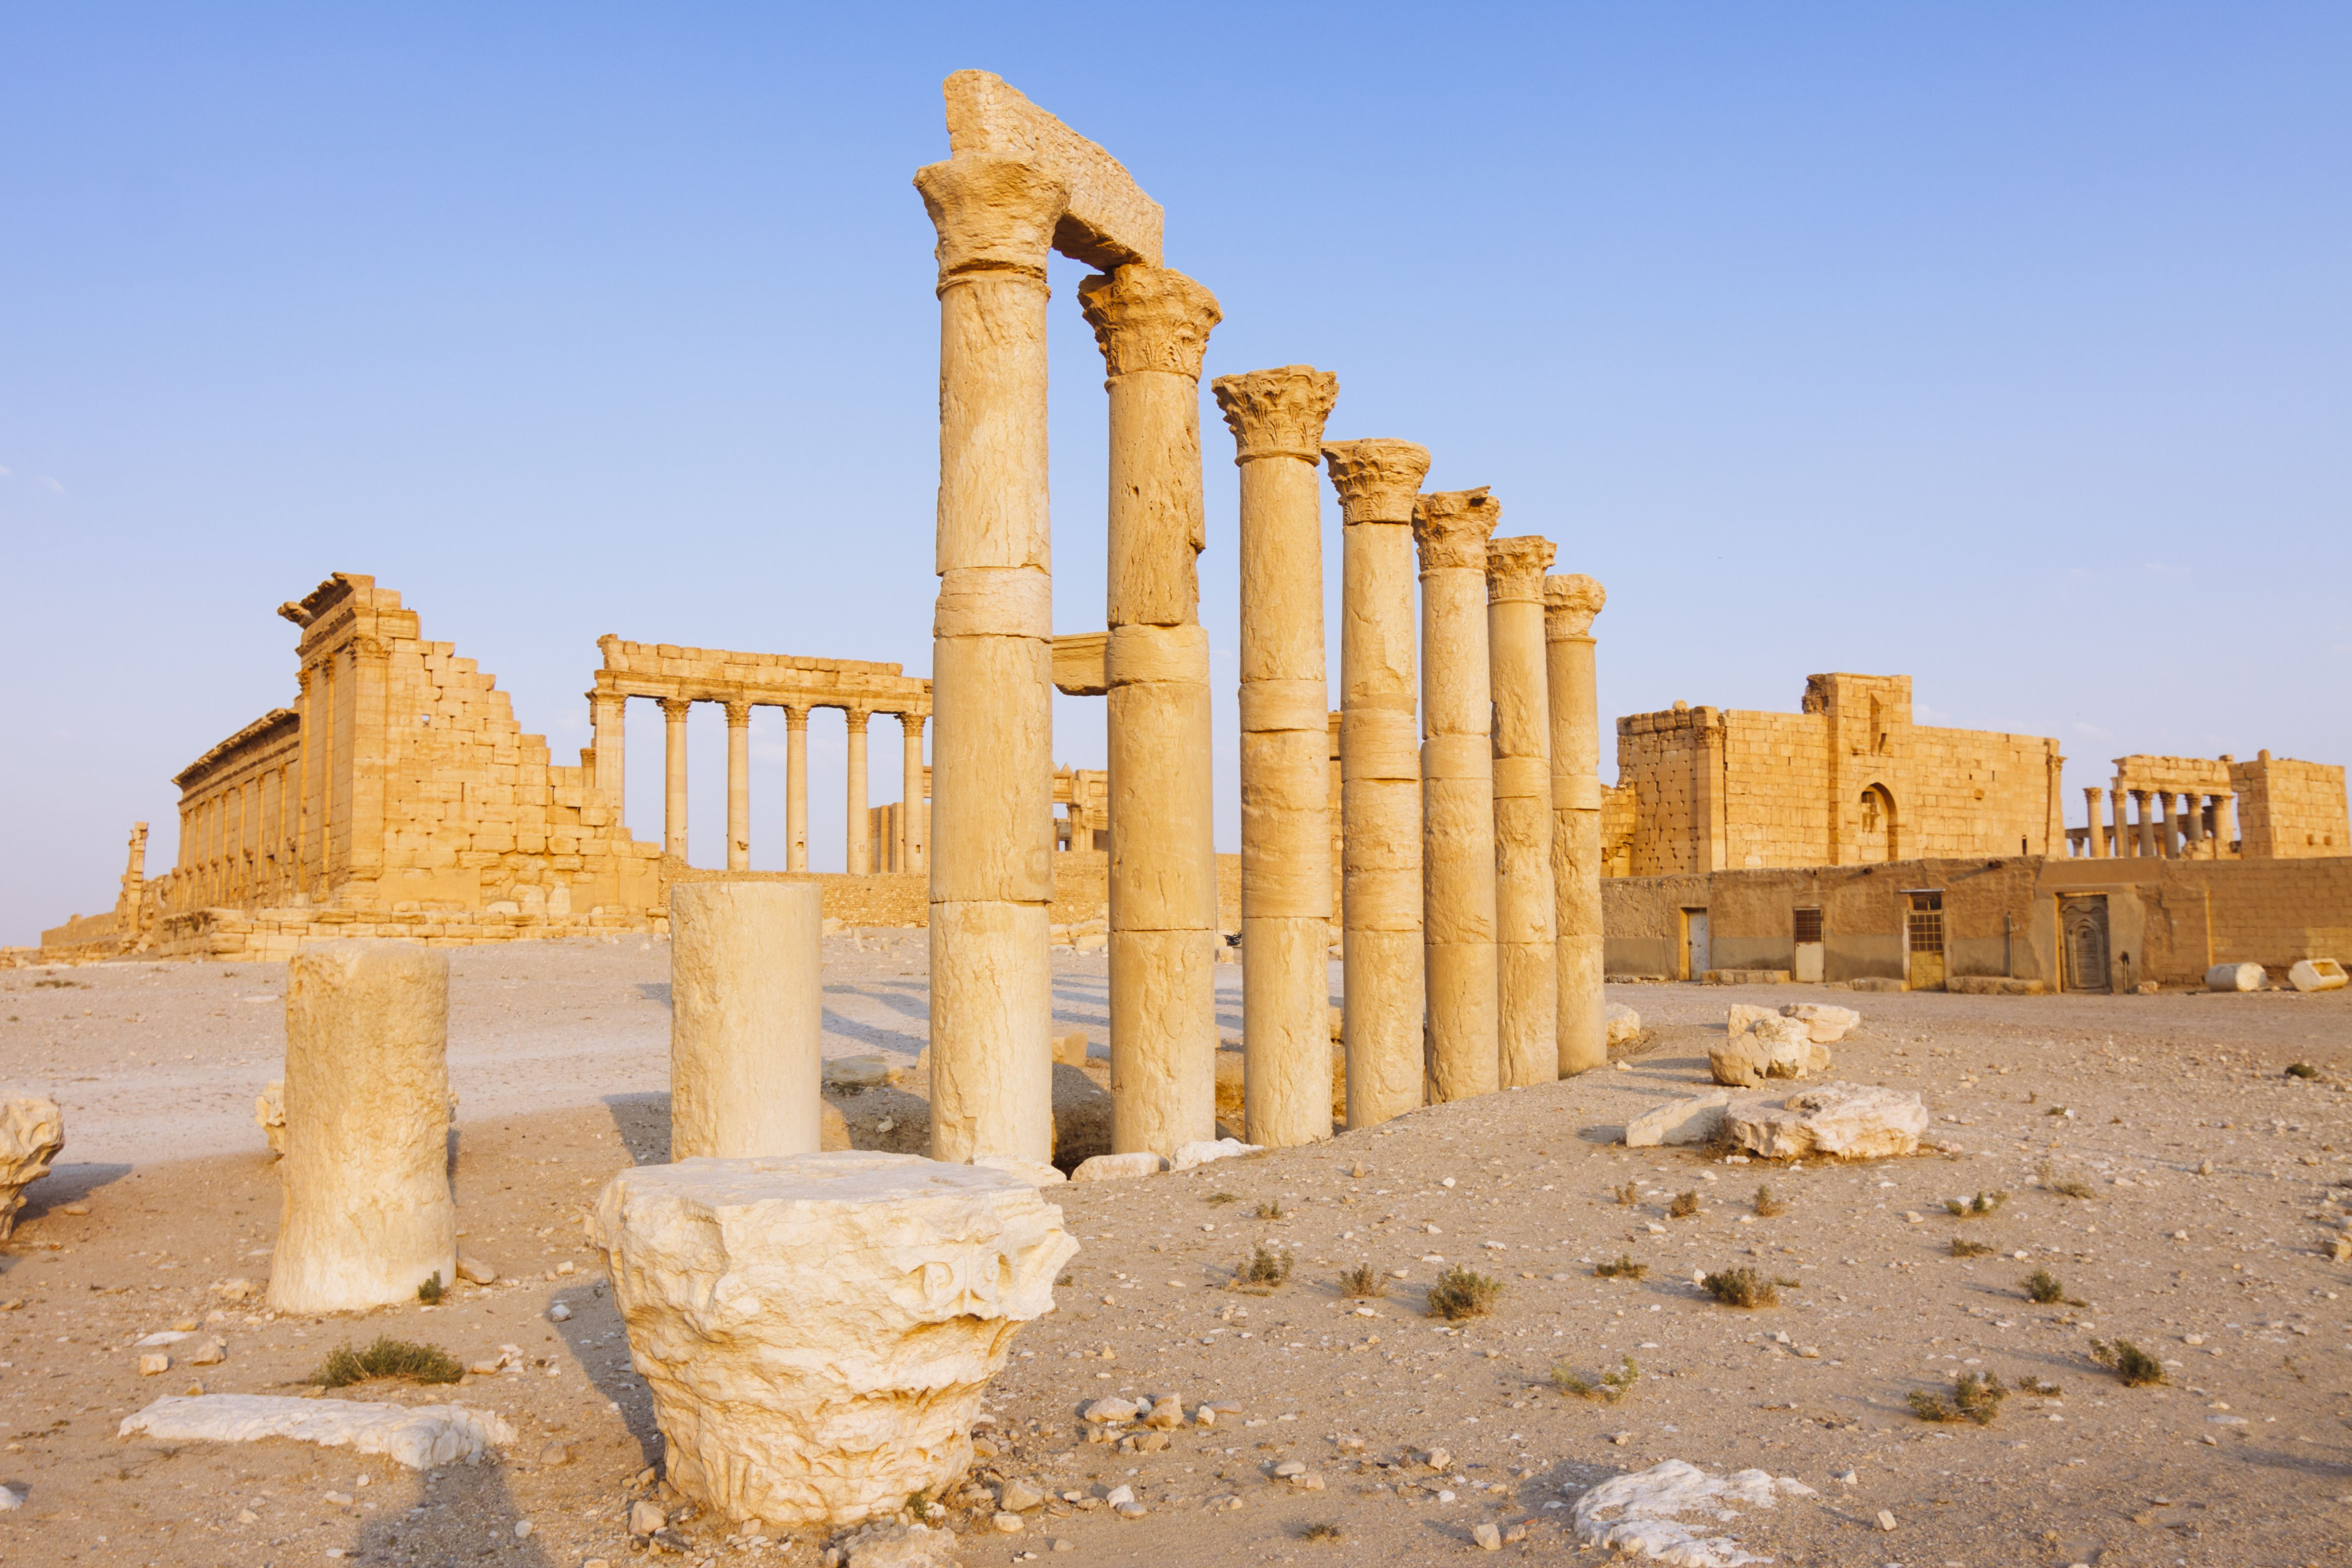 Palmyra, Great Colonnade and Temple of Bel